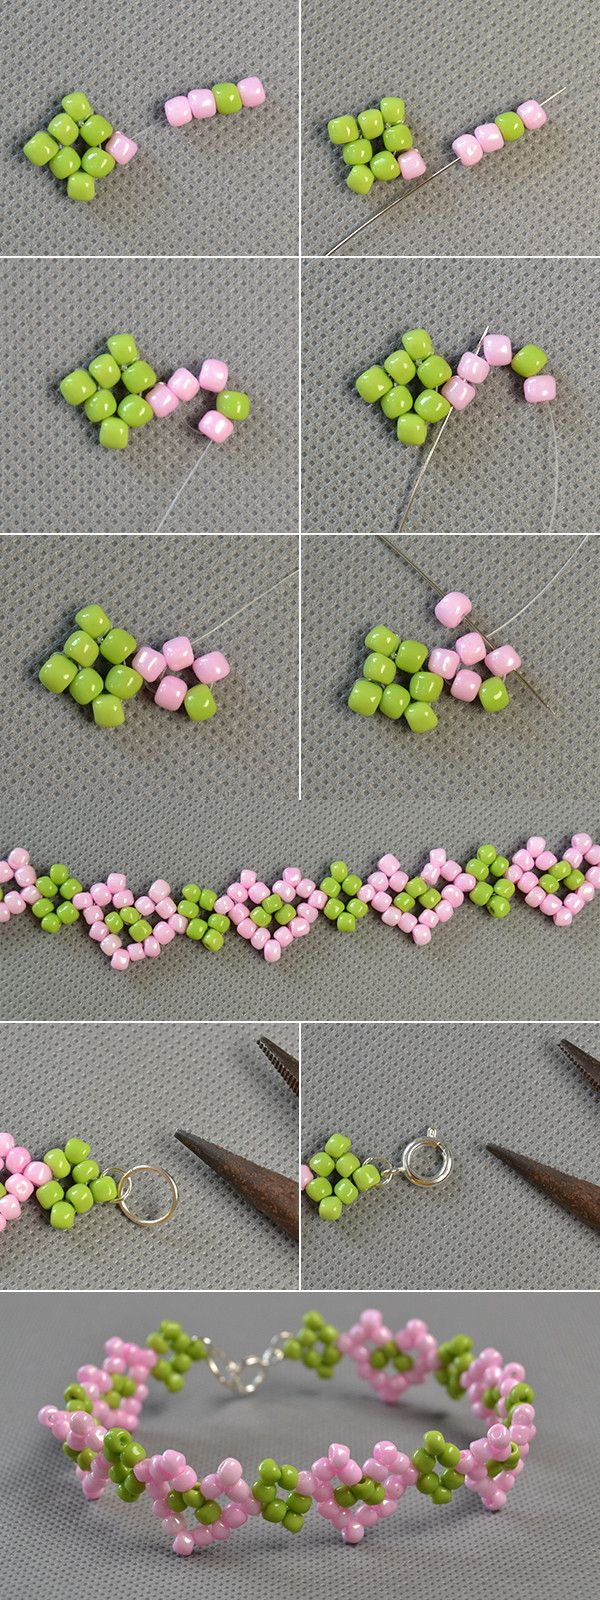 beaded heart pattern bracelet, love it? lc.pandahall.com will share us the tutorial soon.